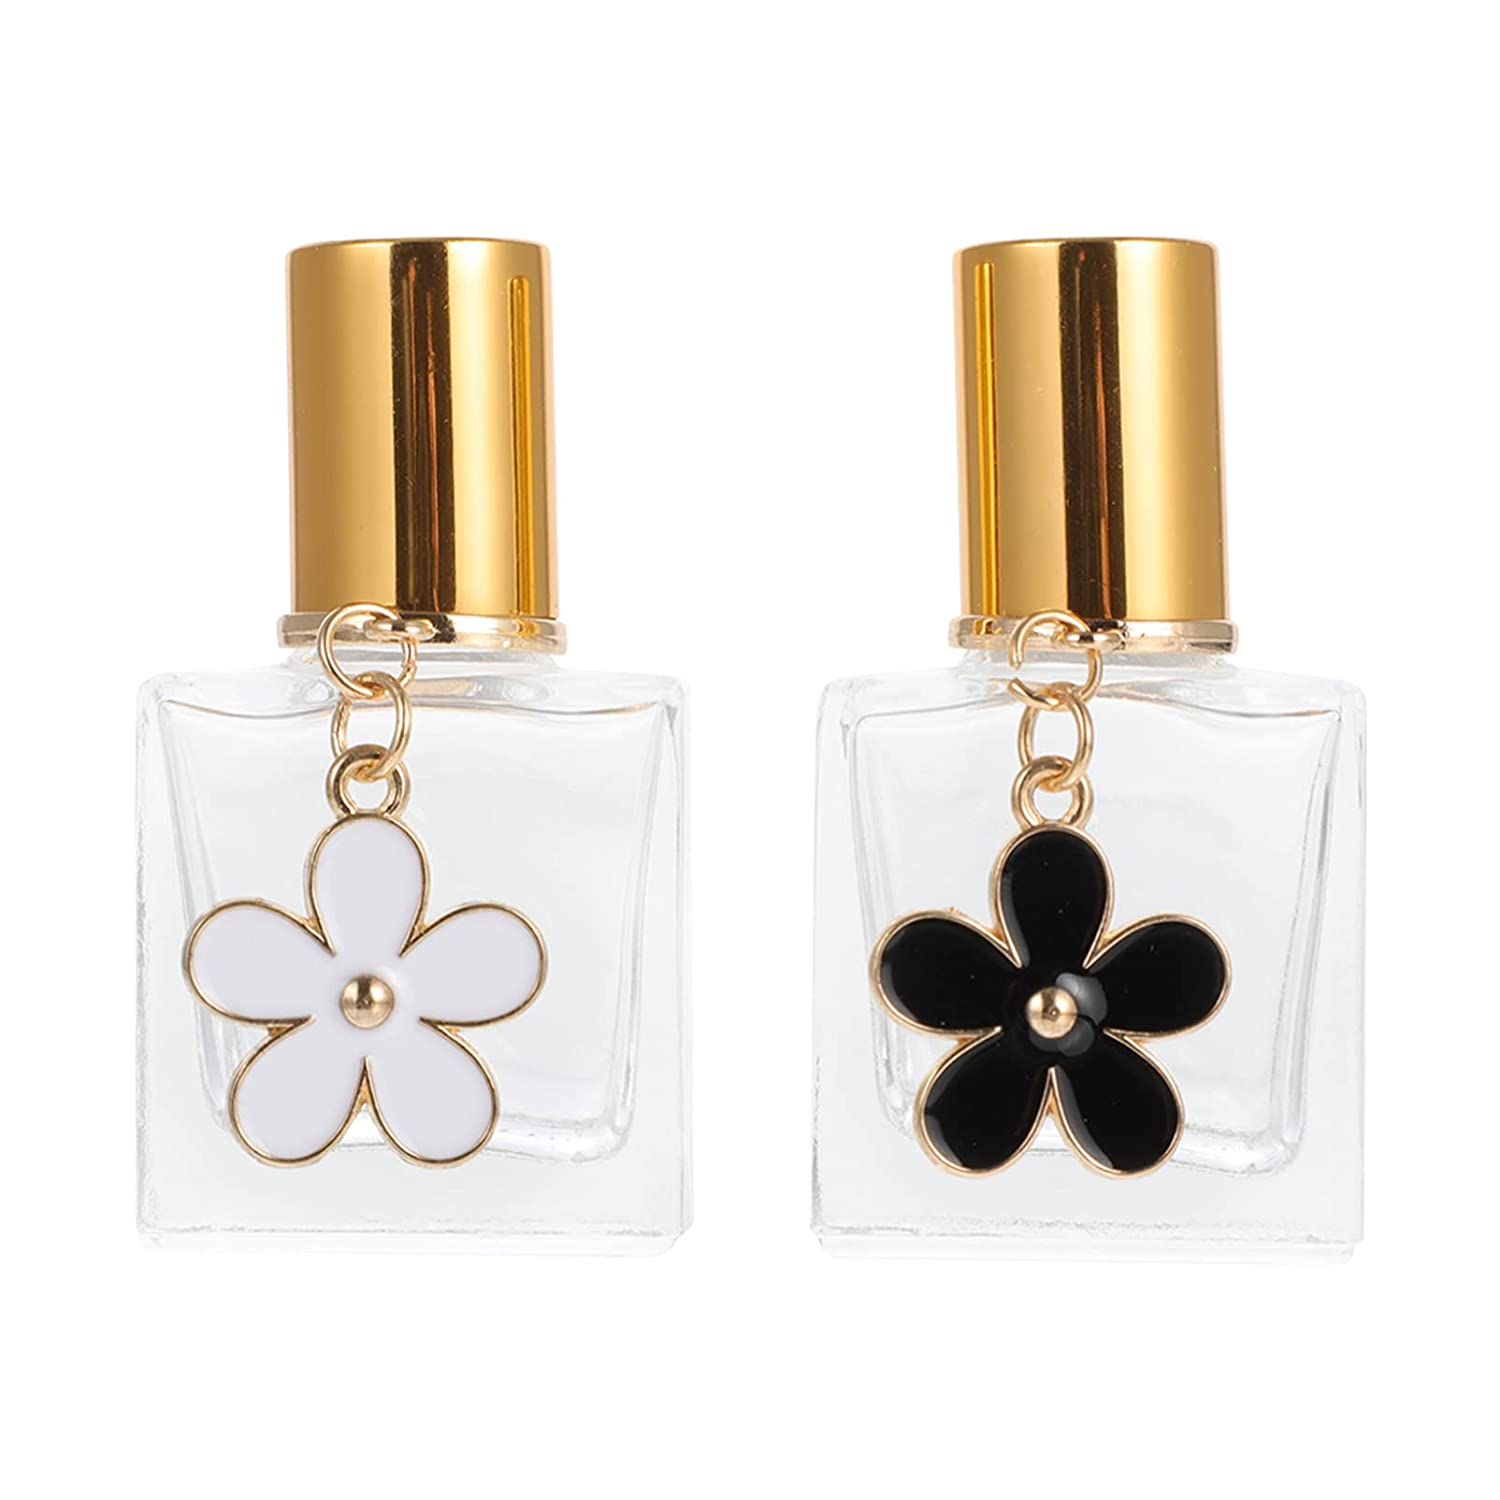 Lurrose Glass Raleigh Mall Roll On Max 42% OFF Perfume Refillable 10ML Esse 2pcs Bottles